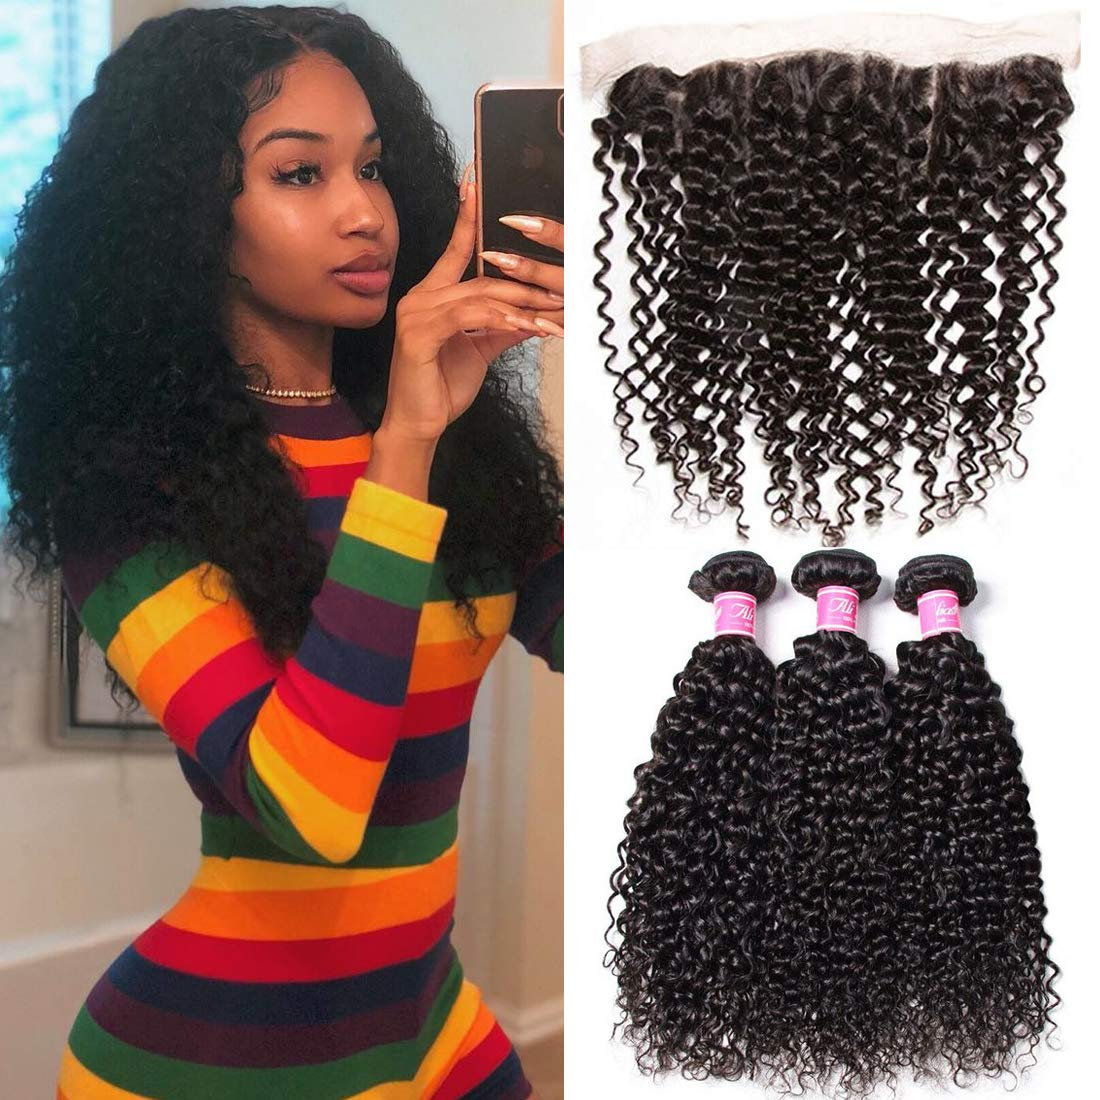 Ali Julia Hair Brazilian Curly Hair 3 Bundles with 13x4 Frontal Lace Clsoure Virgin 100% 10A Unprocessed Human Hair Extensions Natural Color (20 22 24+18 inch) by Yilian